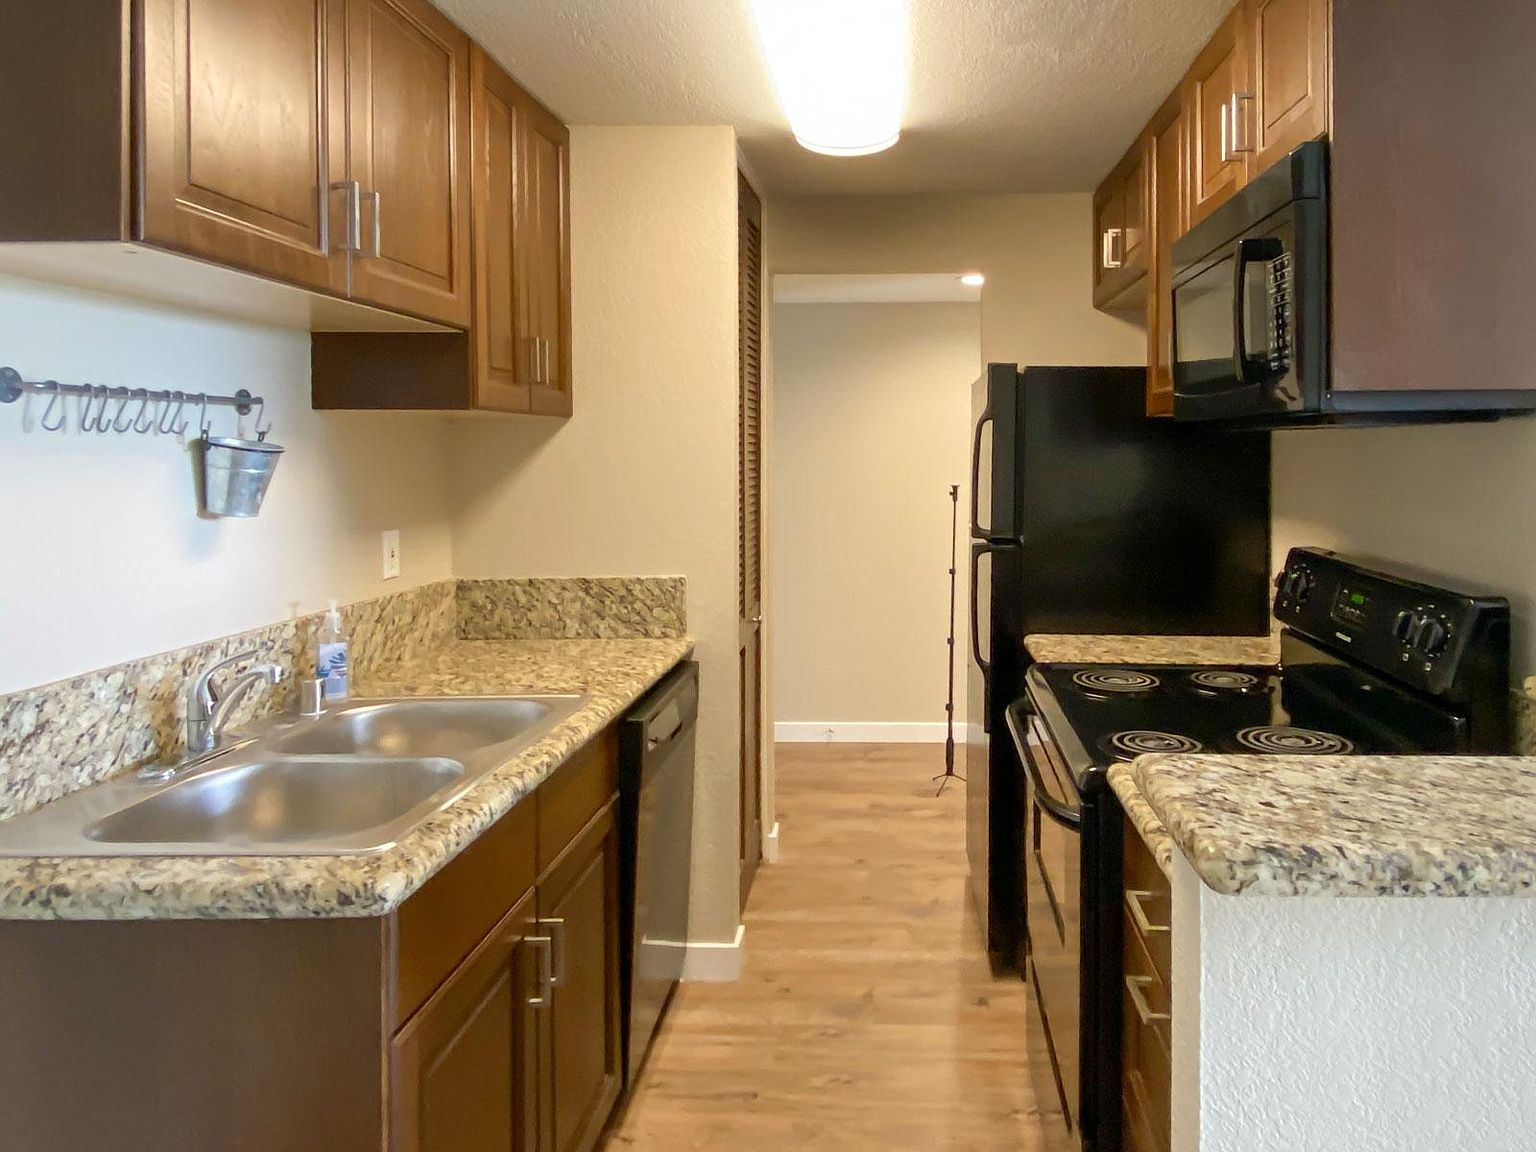 1333 8th ave unit 204 san diego ca 92101 zillow